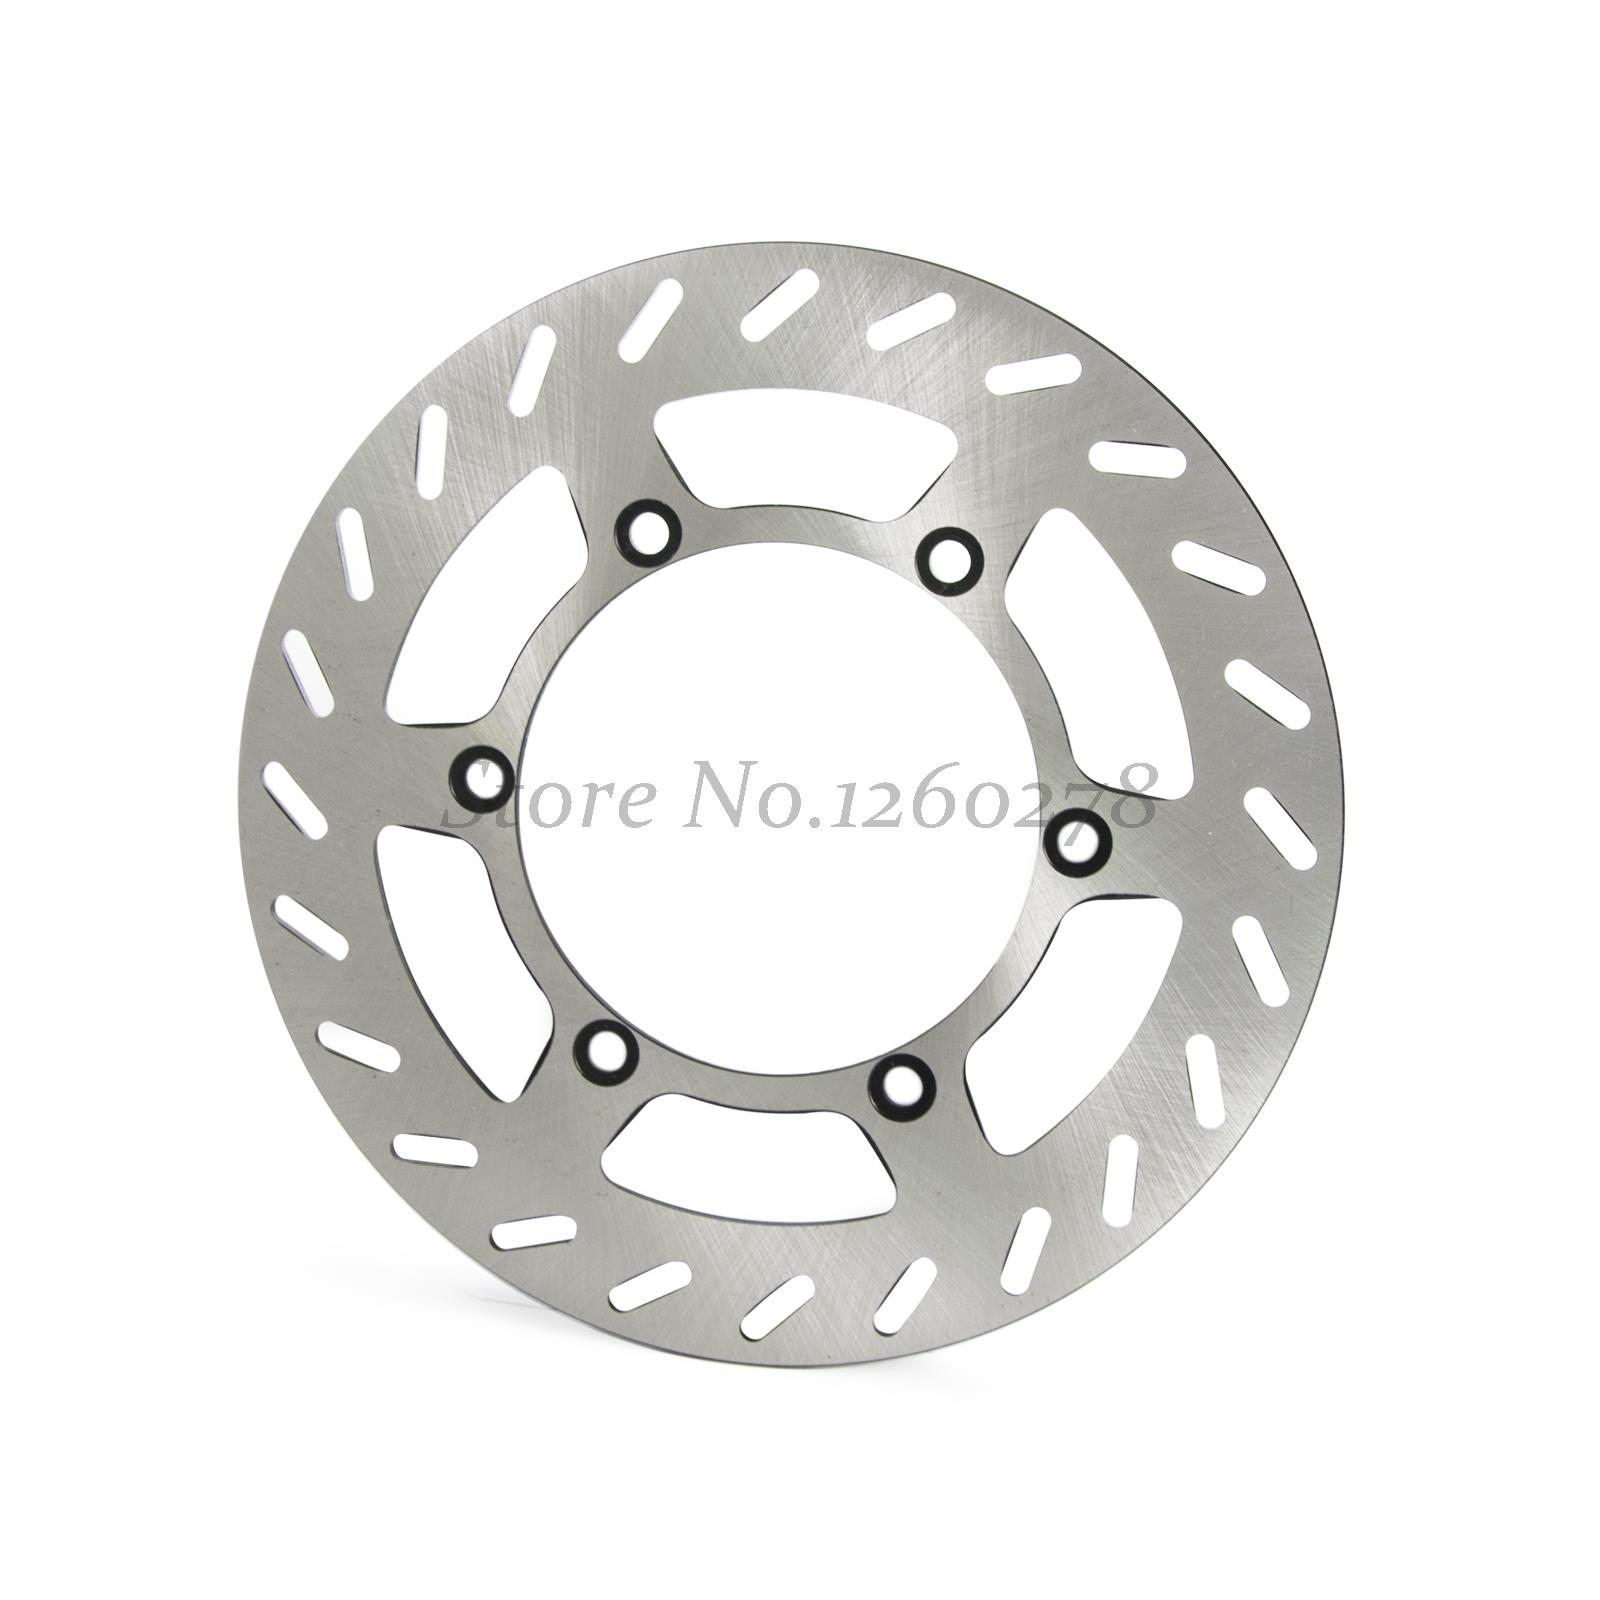 New Motorcycle Front Rotor Brake Disc For Yamaha TT 250 L V LC VC W 1999